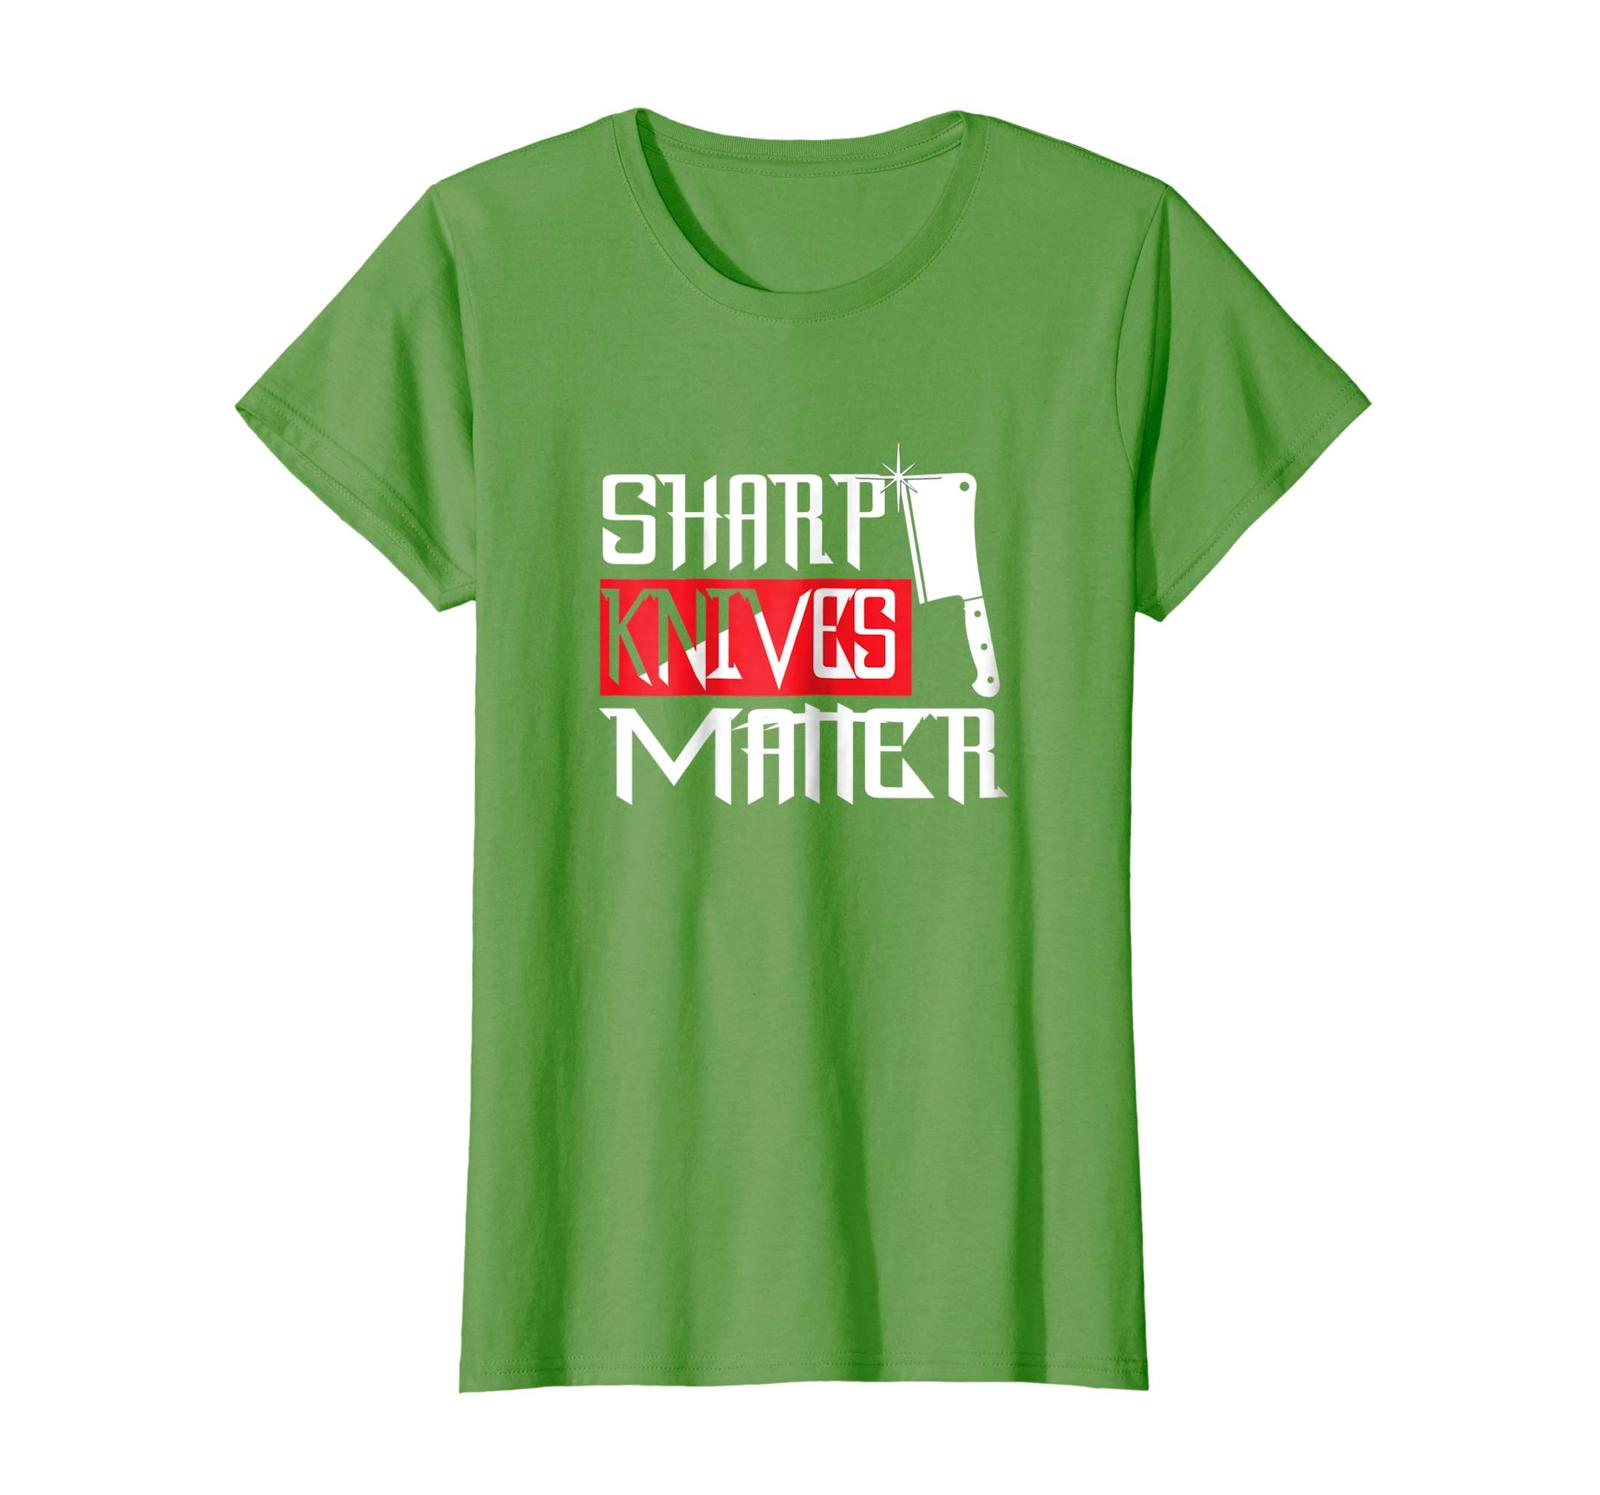 Brother Shirts - Sharp Knives Matter Funny Culinary Chef Gift T-Shirt Wowen